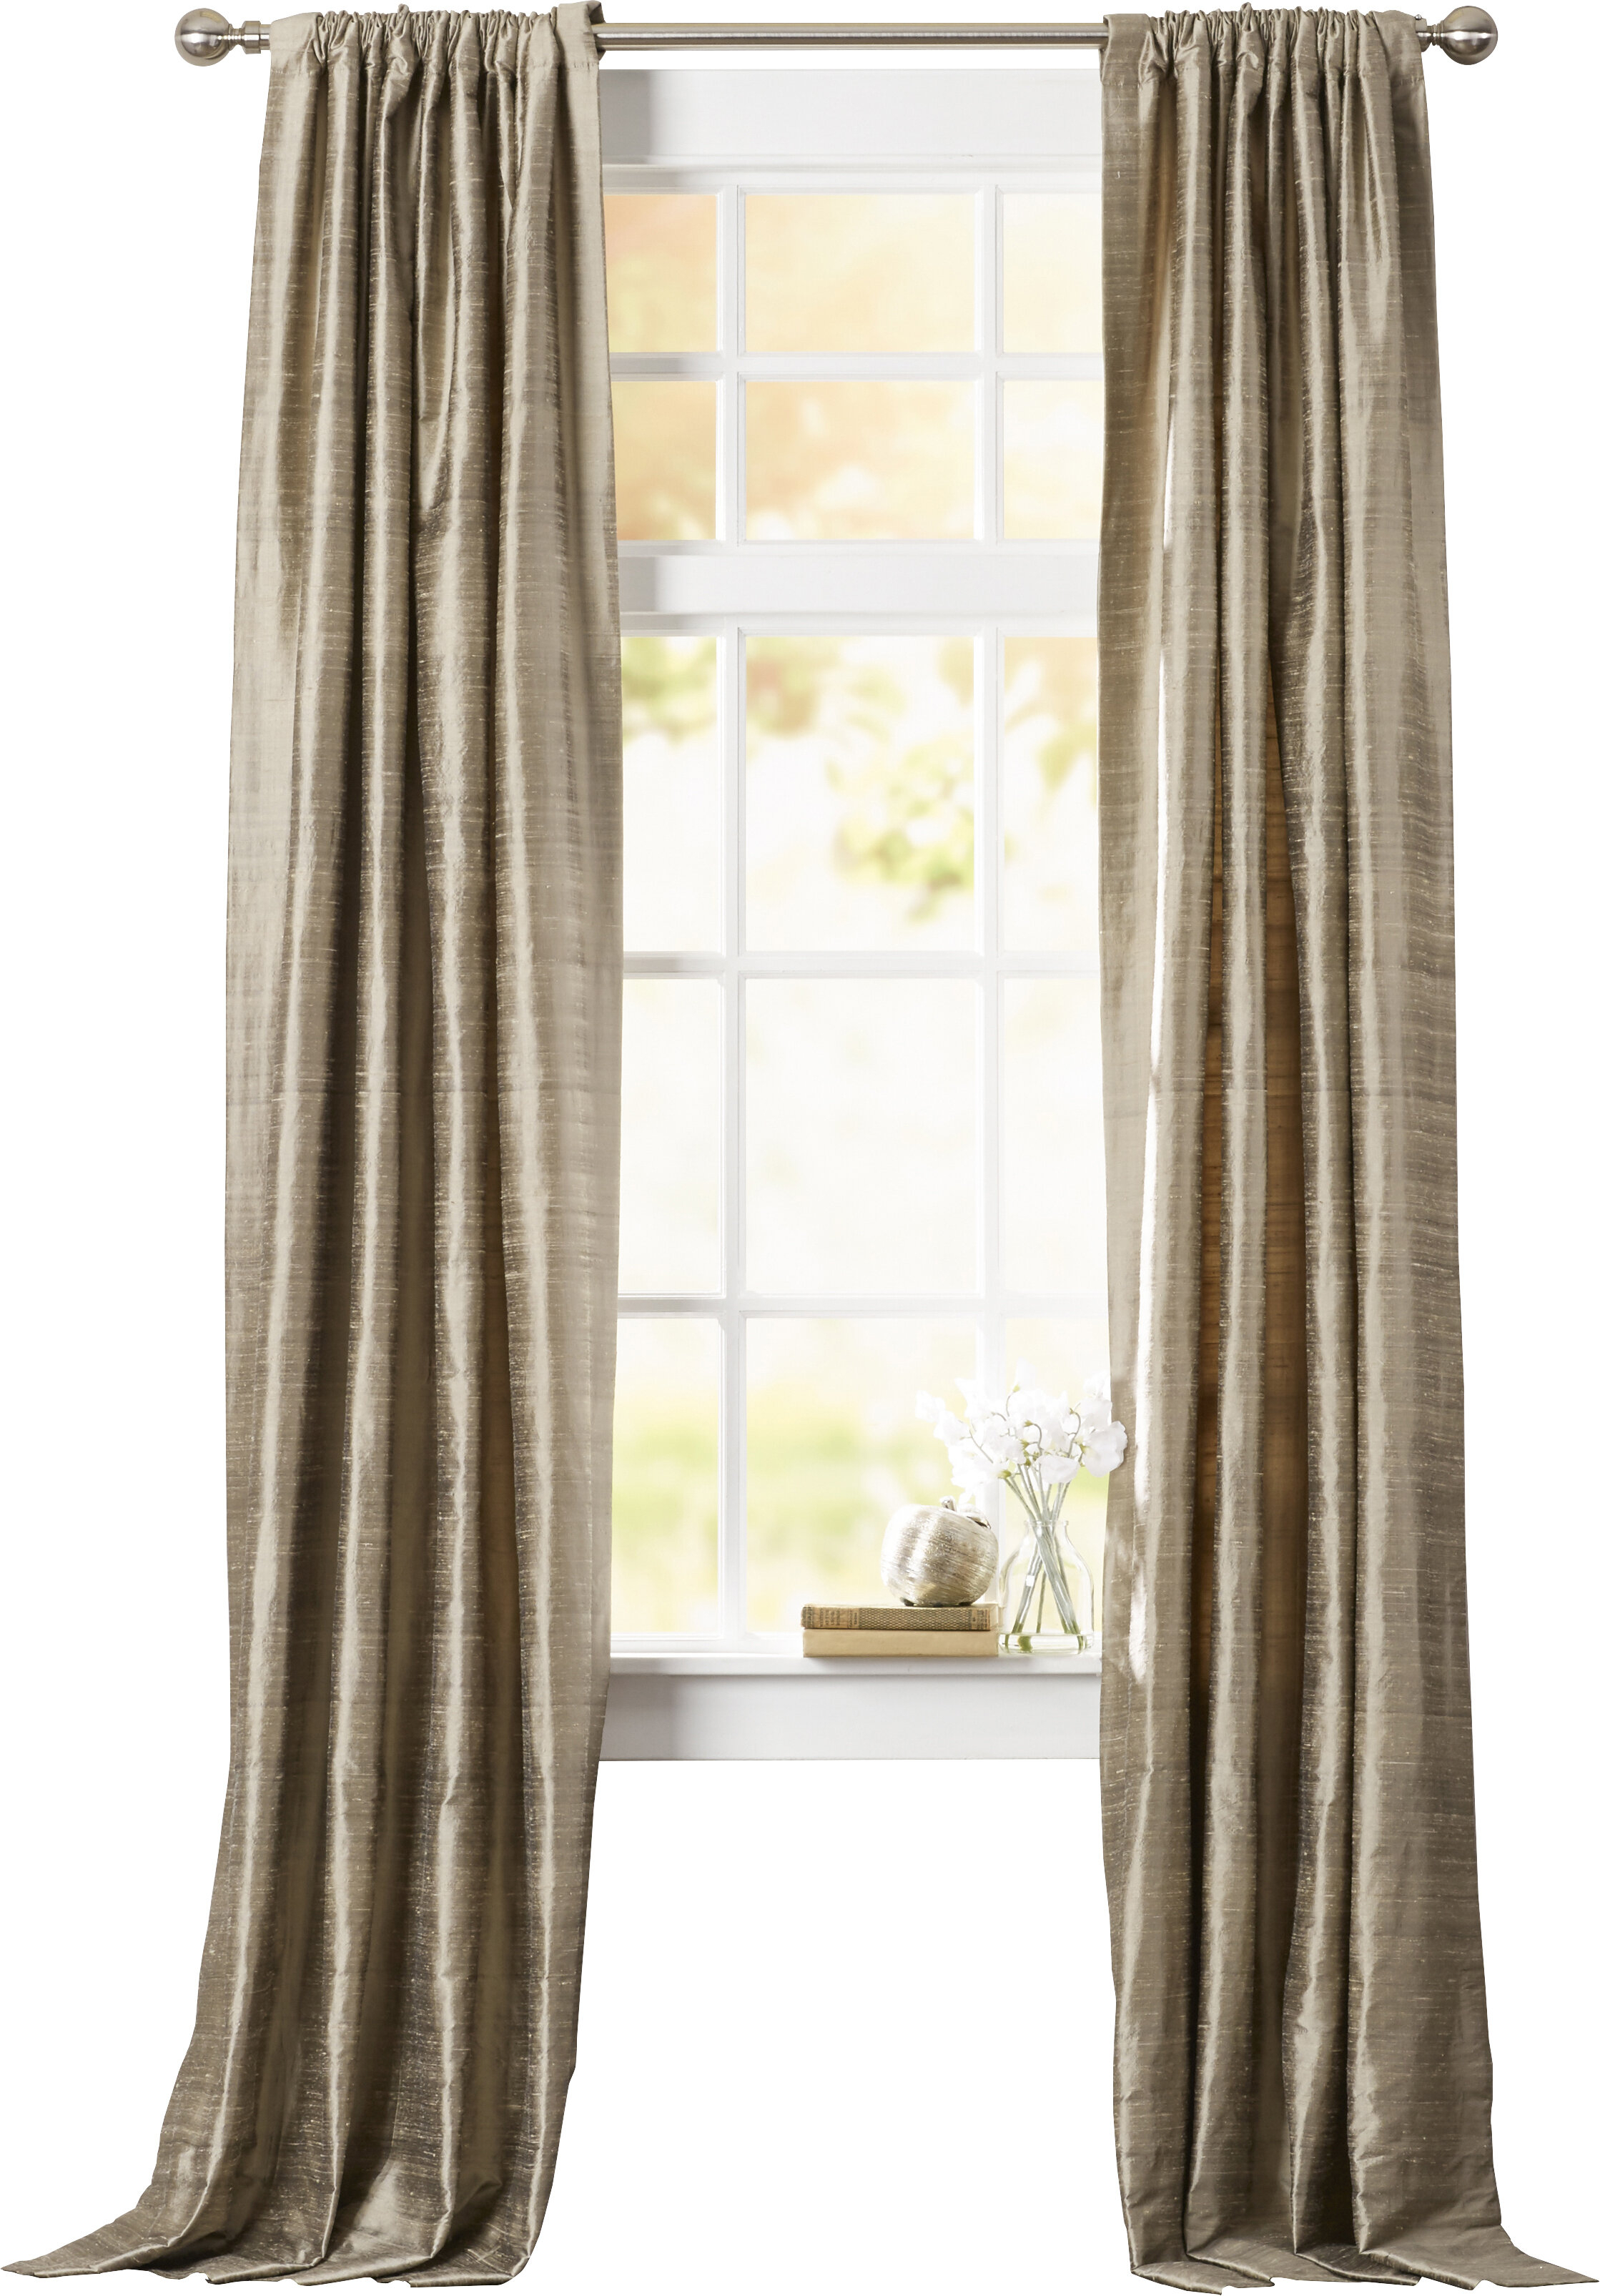 Willa Arlo Interiors Toulouse Textured Dupioni Silk Room Inside True Blackout Vintage Textured Faux Silk Curtain Panels (View 24 of 30)